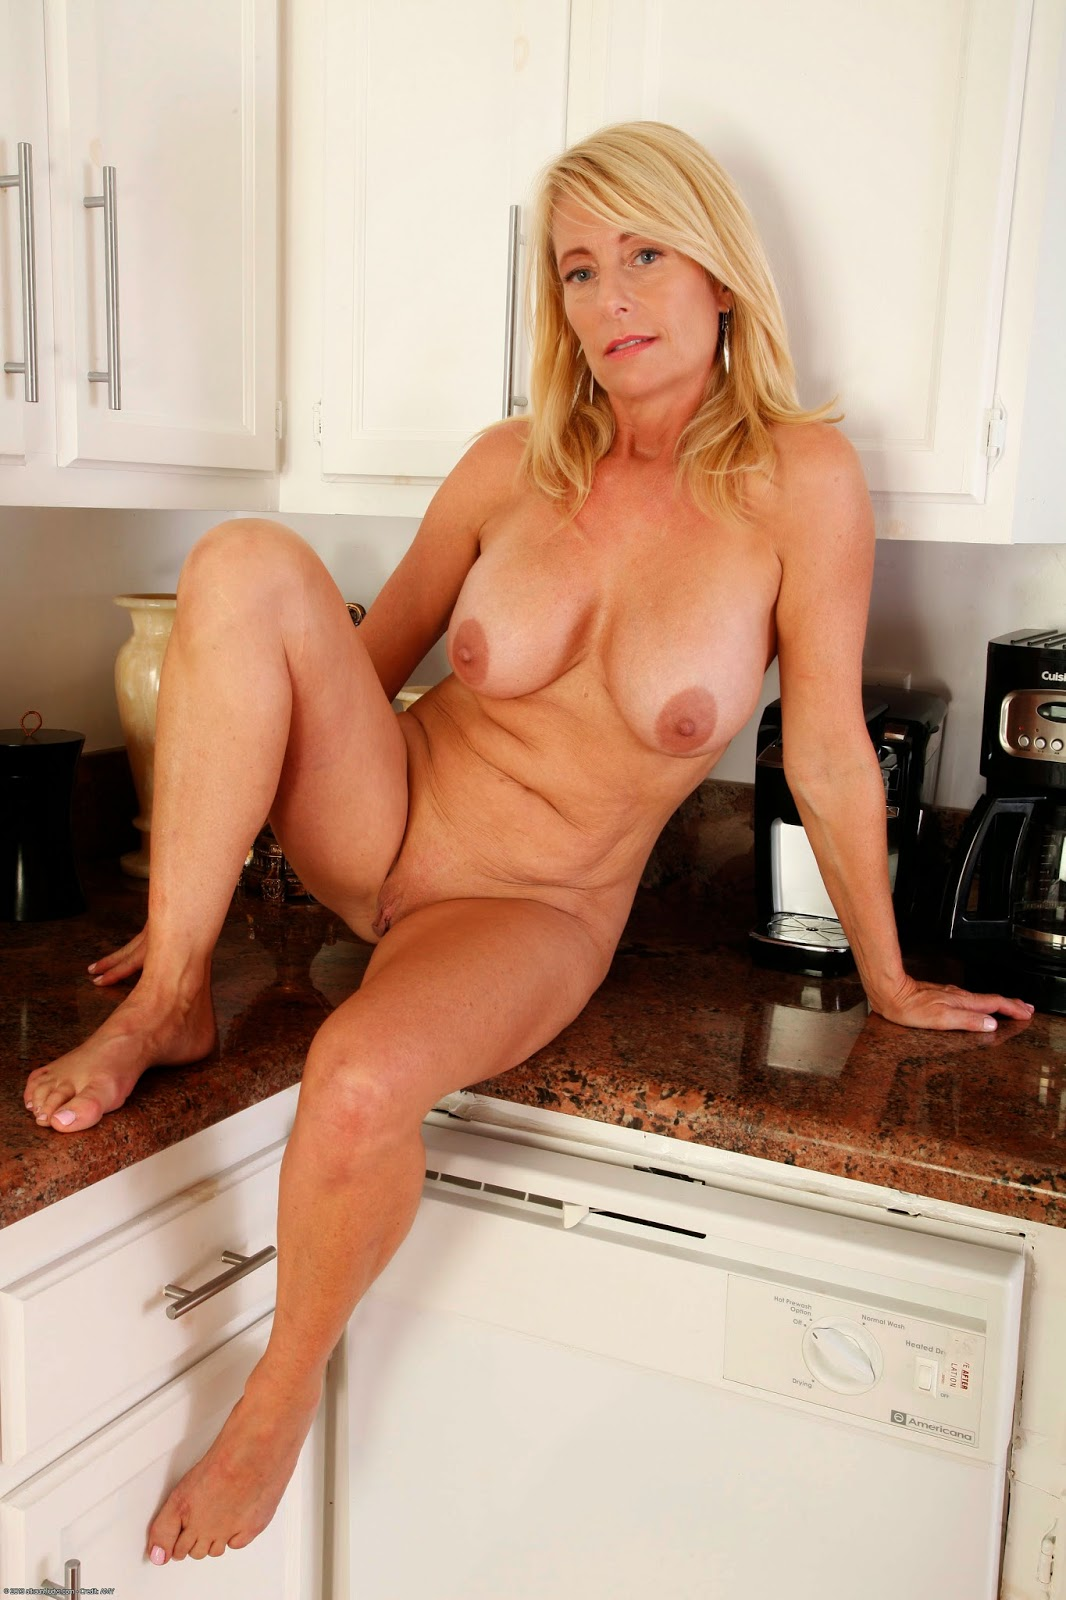 milfs over 50 nude naked pictures - macoun